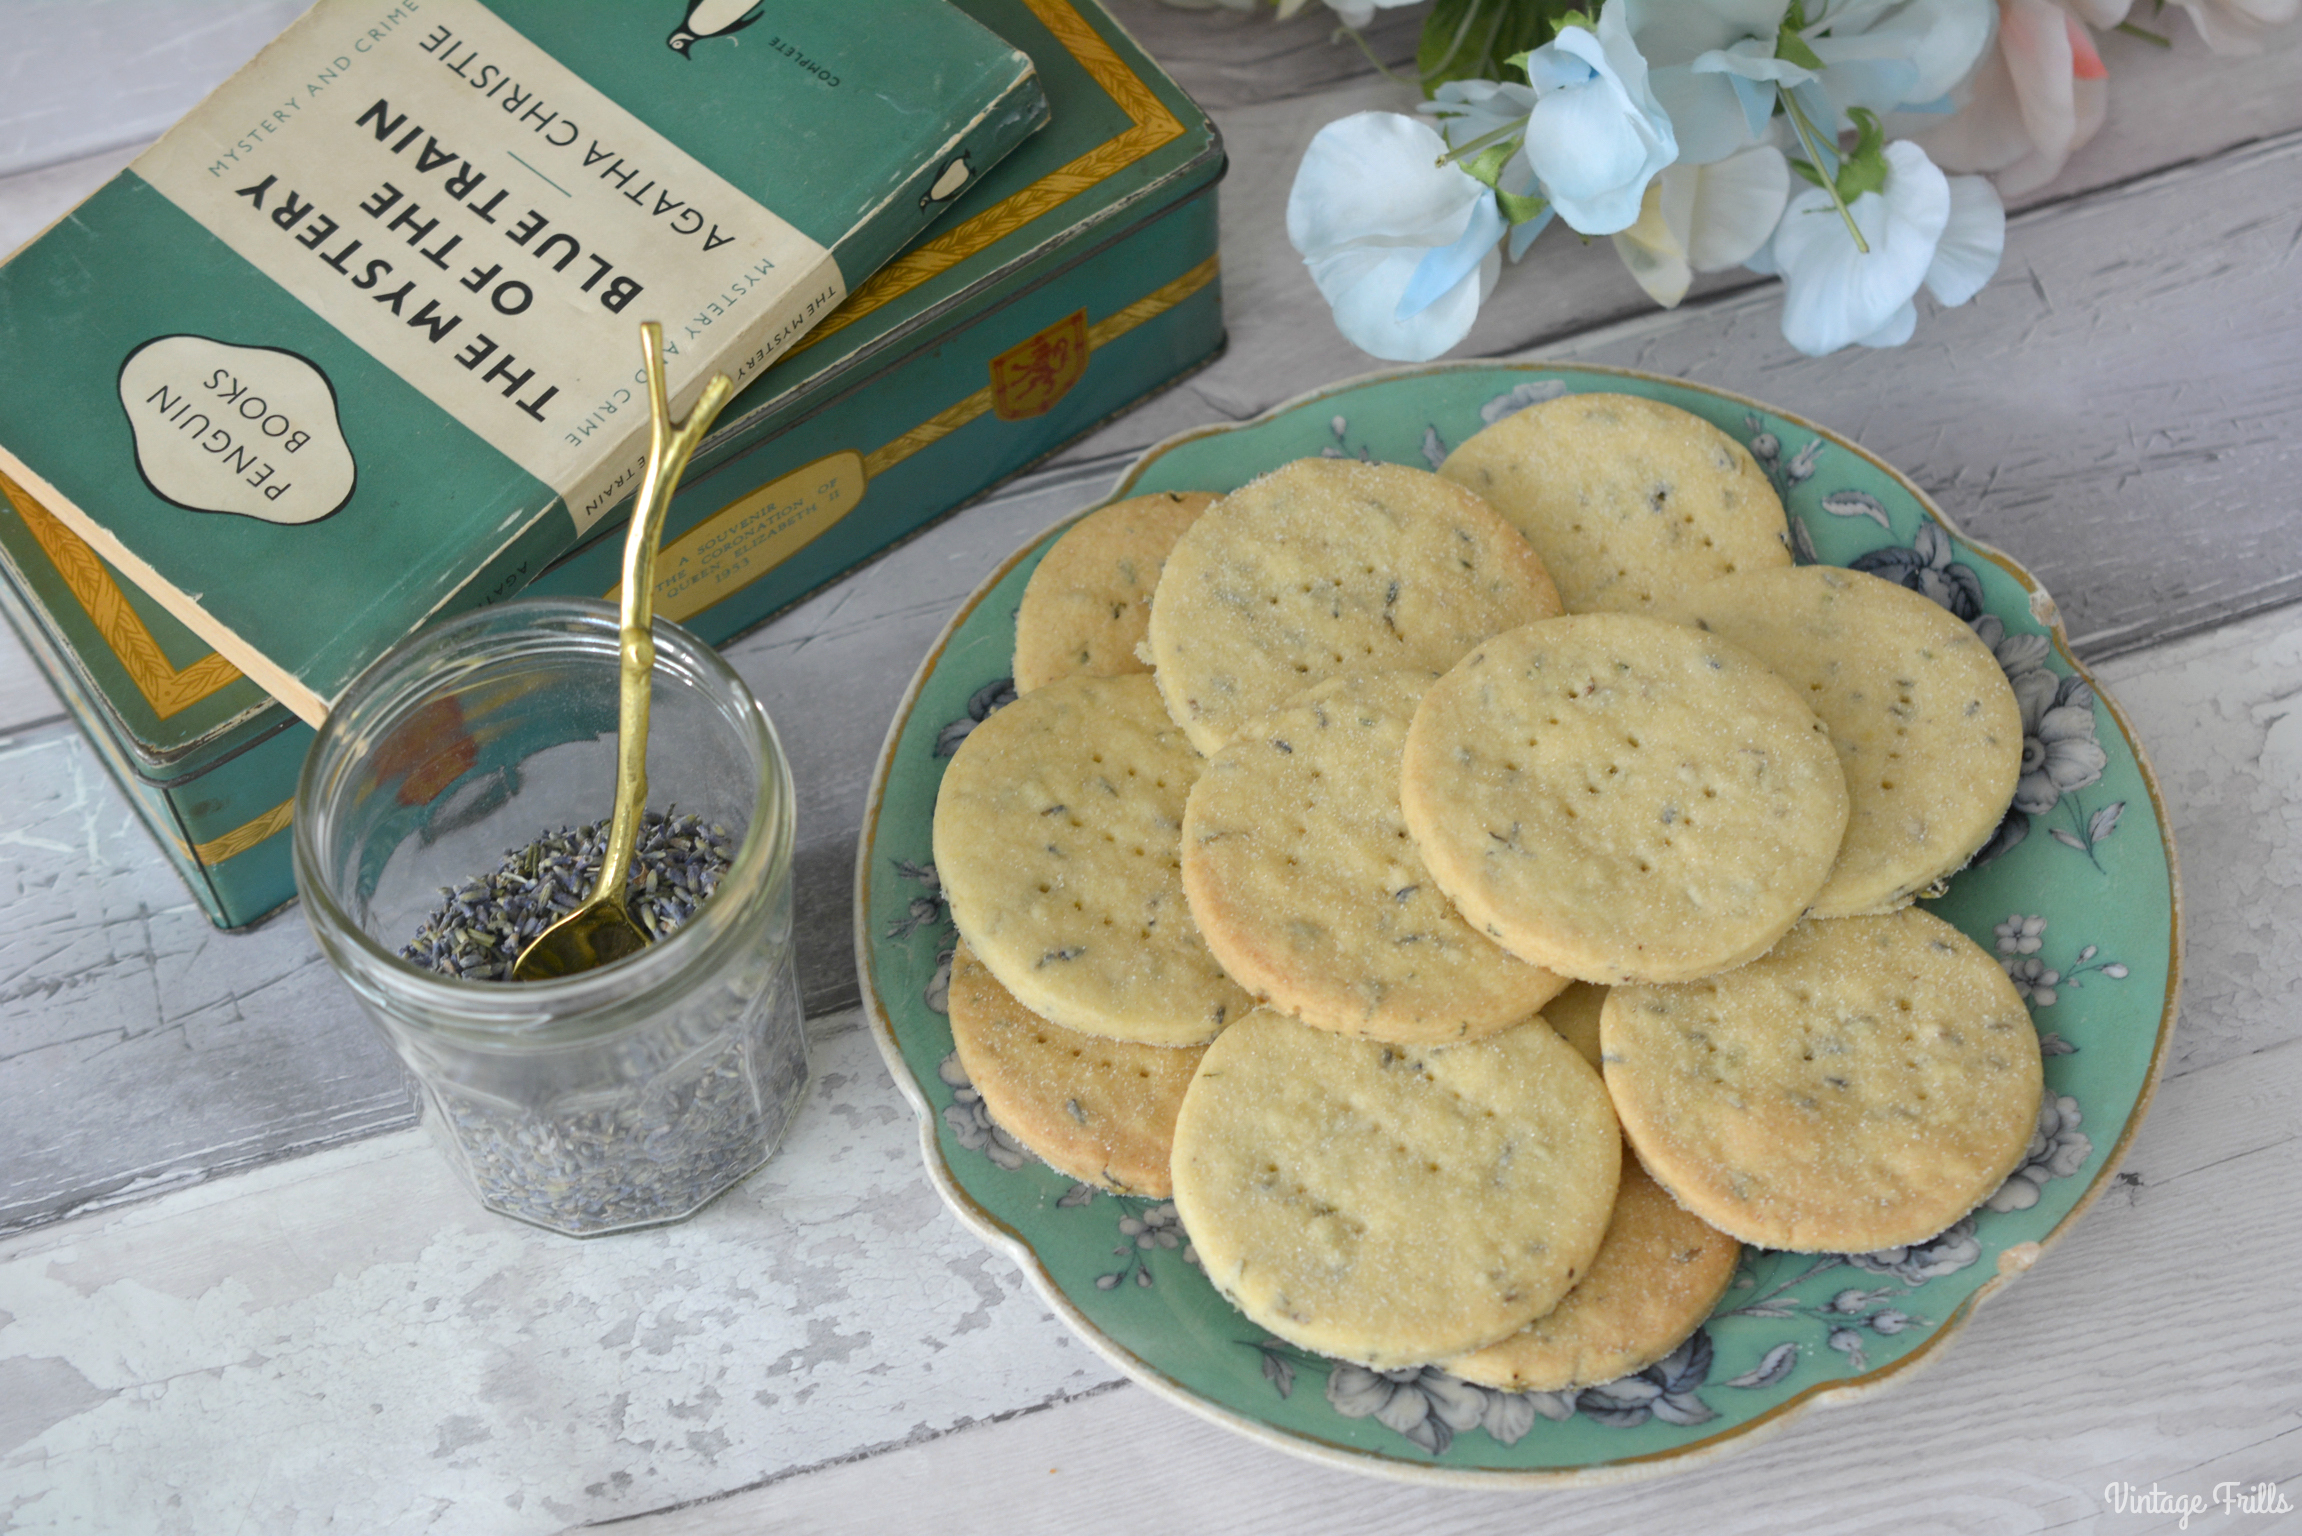 Baking – Lavender Shortbread Recipe